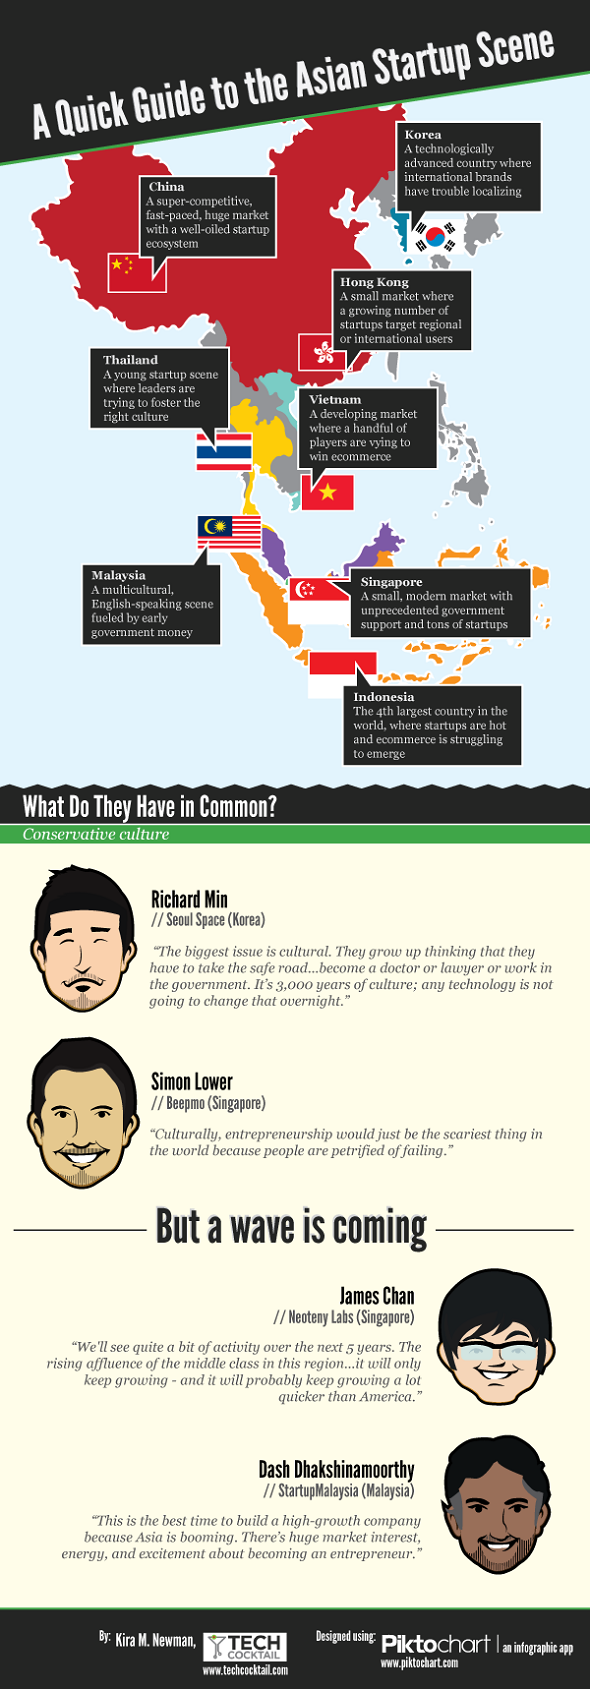 A-Quick-Guide-To-The-Asian-Startup-Scene-Infographic